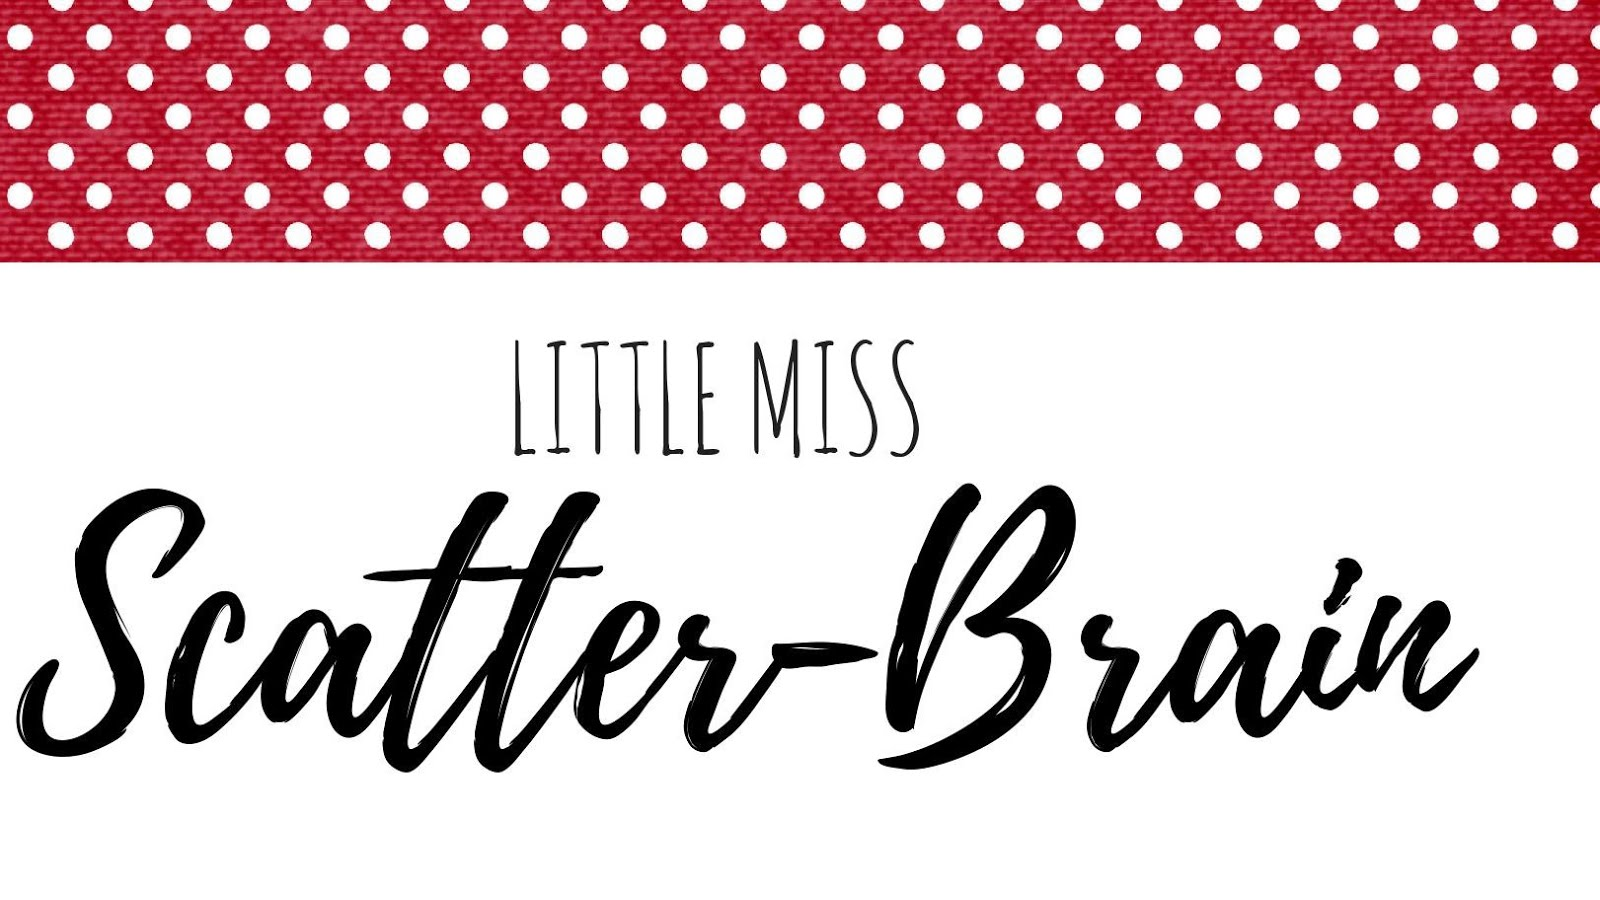 Little Miss Scatter-Brain